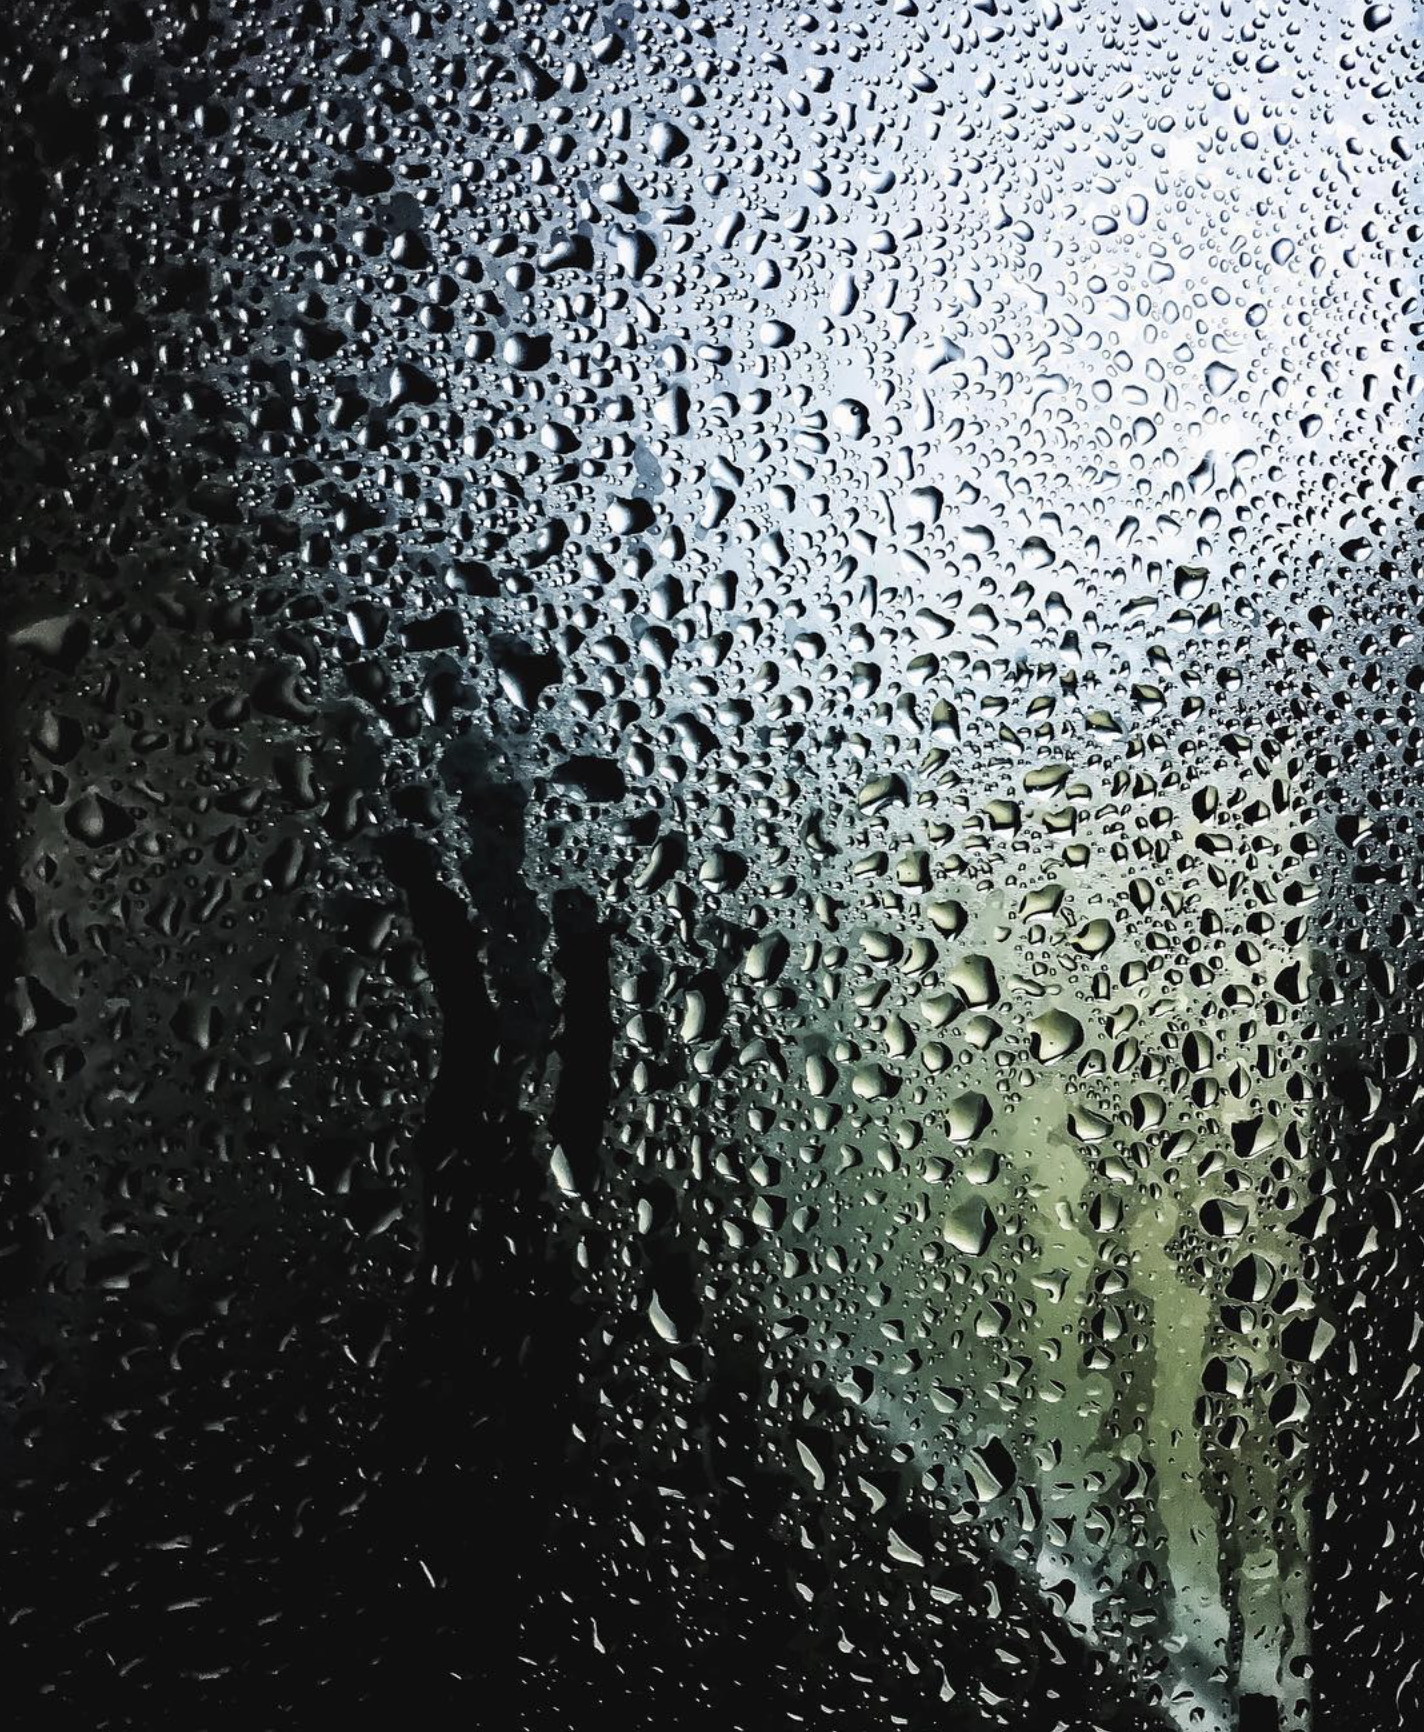 Water Droplets On Glass Abstract Artwork Water Droplets Abstract